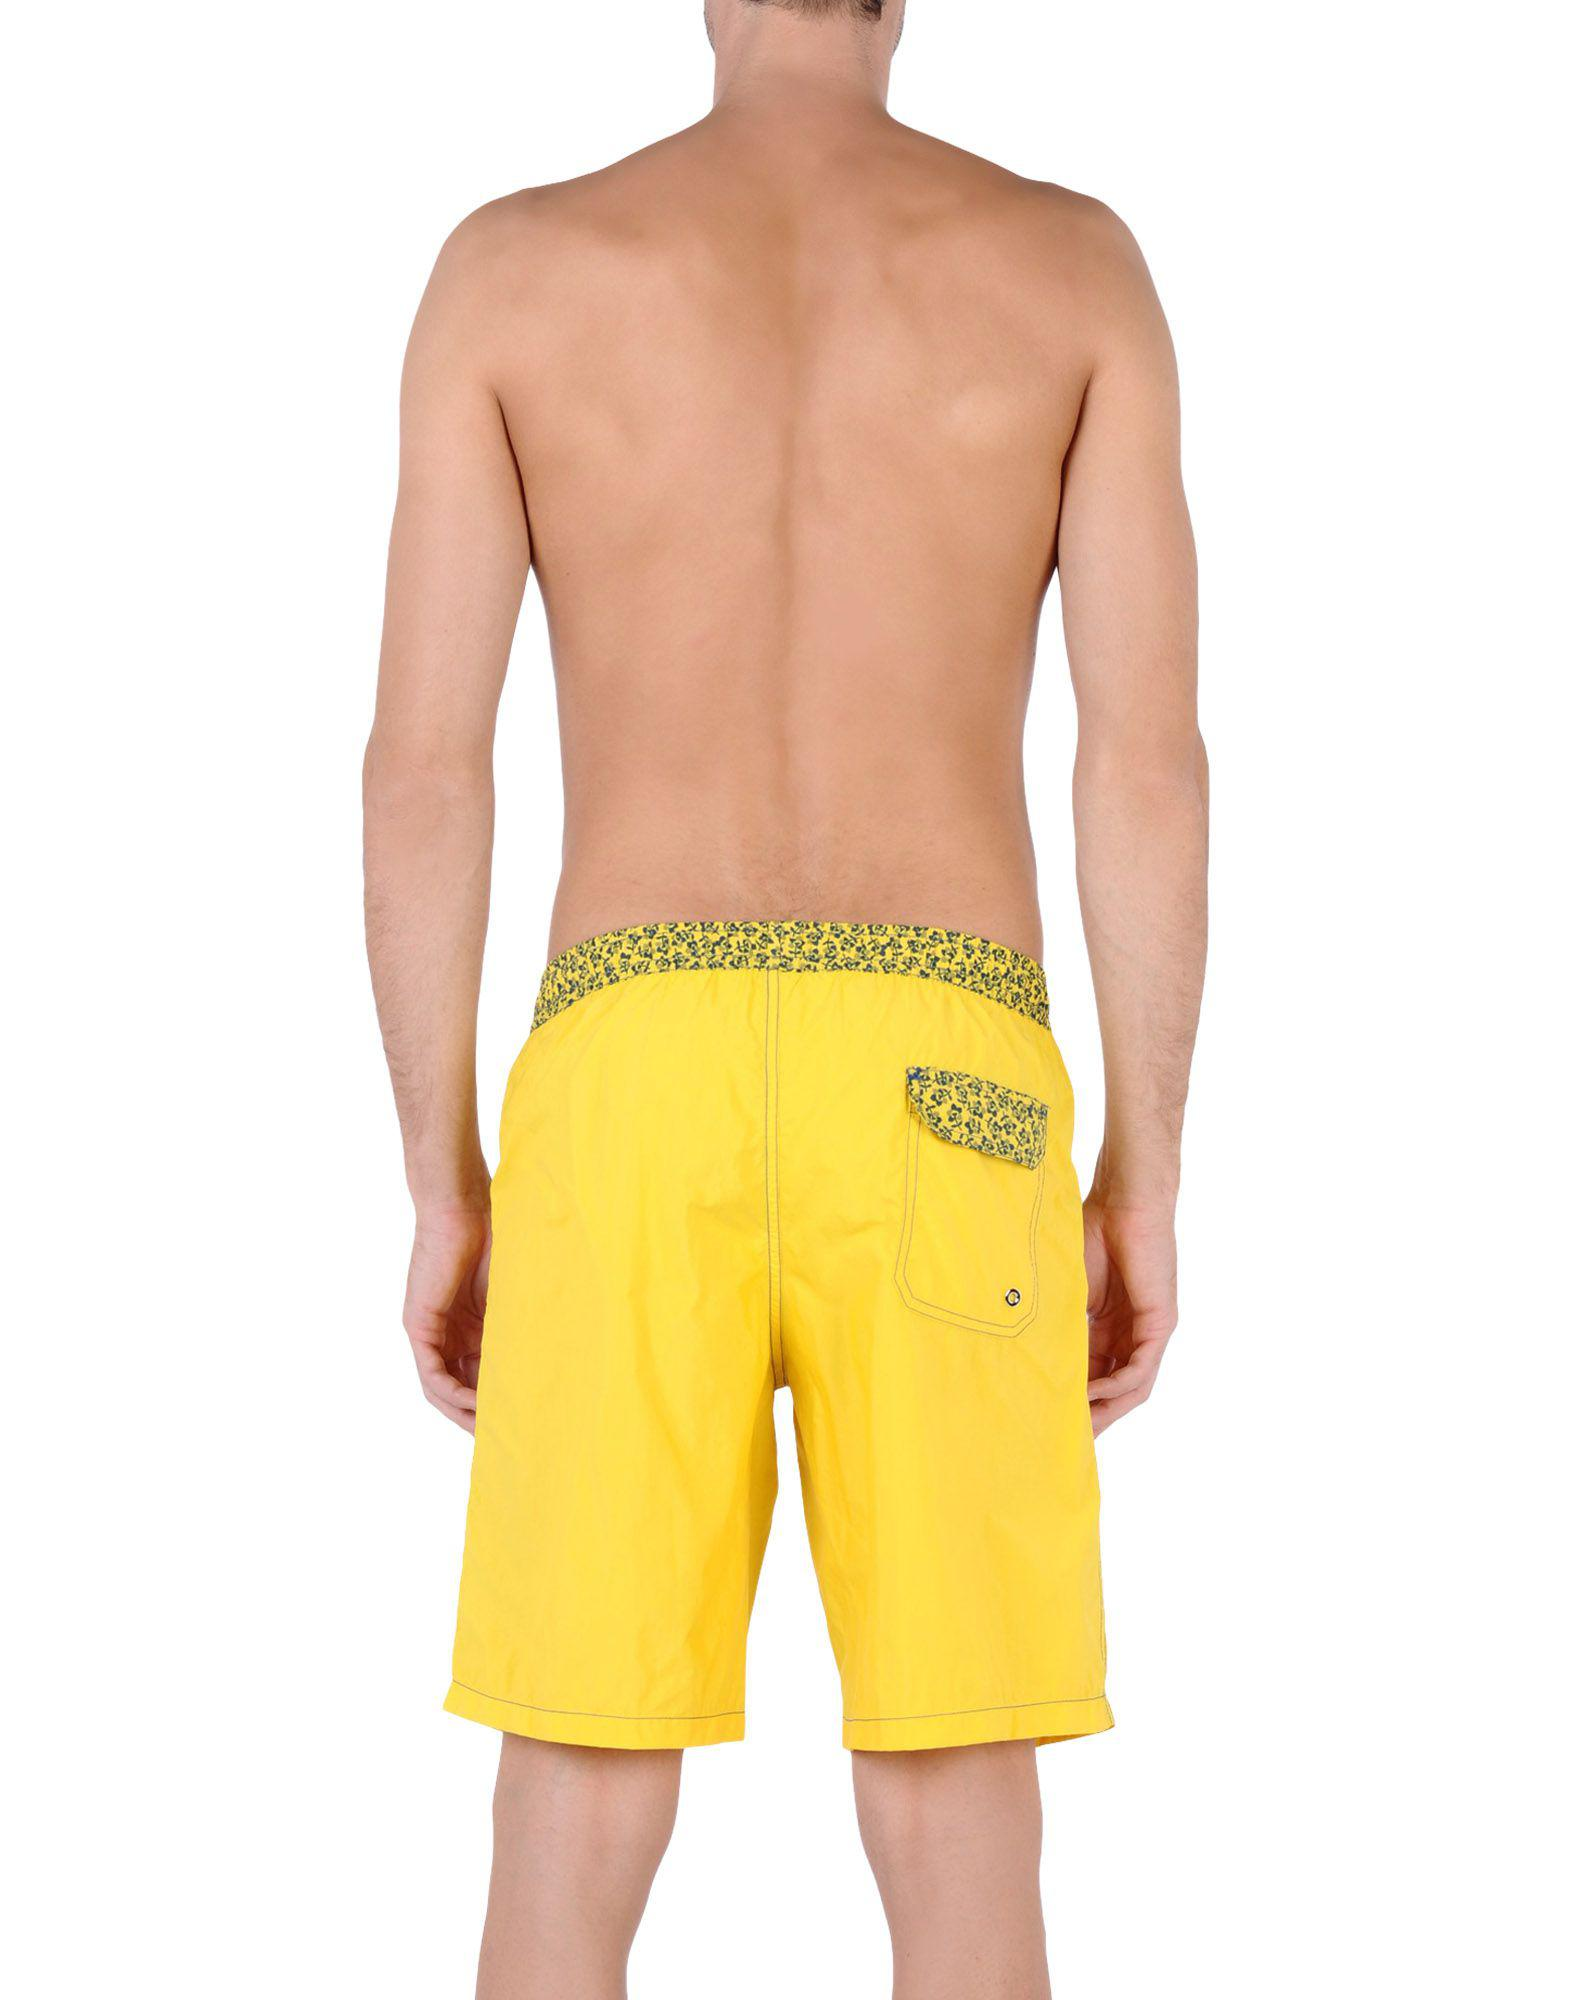 246e92ee88 Gianfranco Ferré Swimming Trunks in Yellow for Men - Lyst